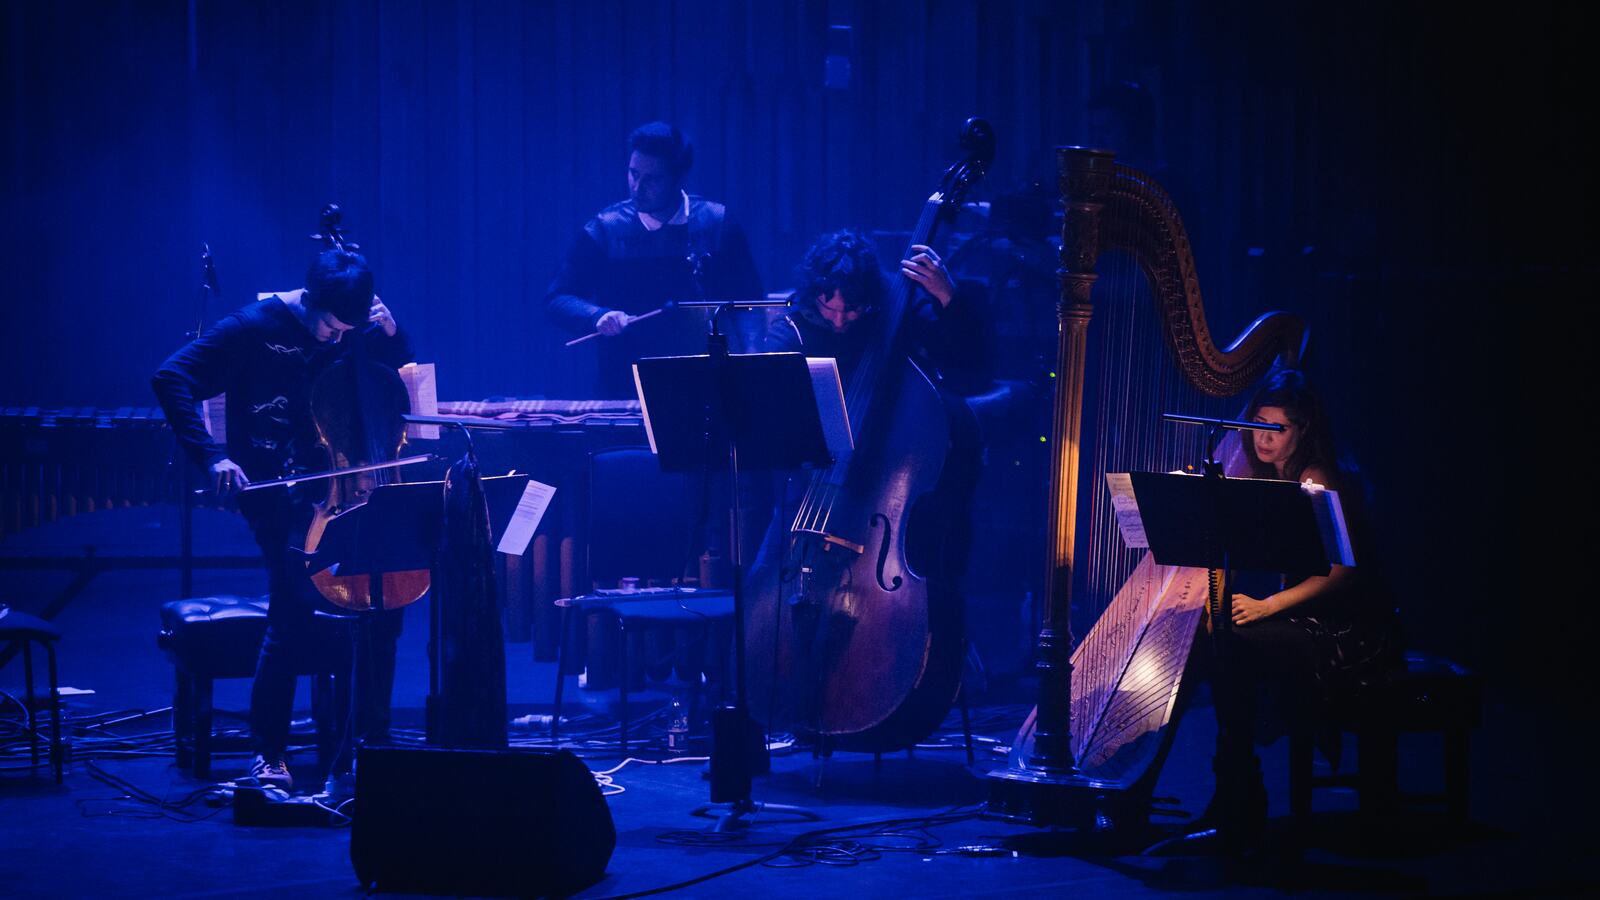 LCO x Erased Tapes at Southbank Centre